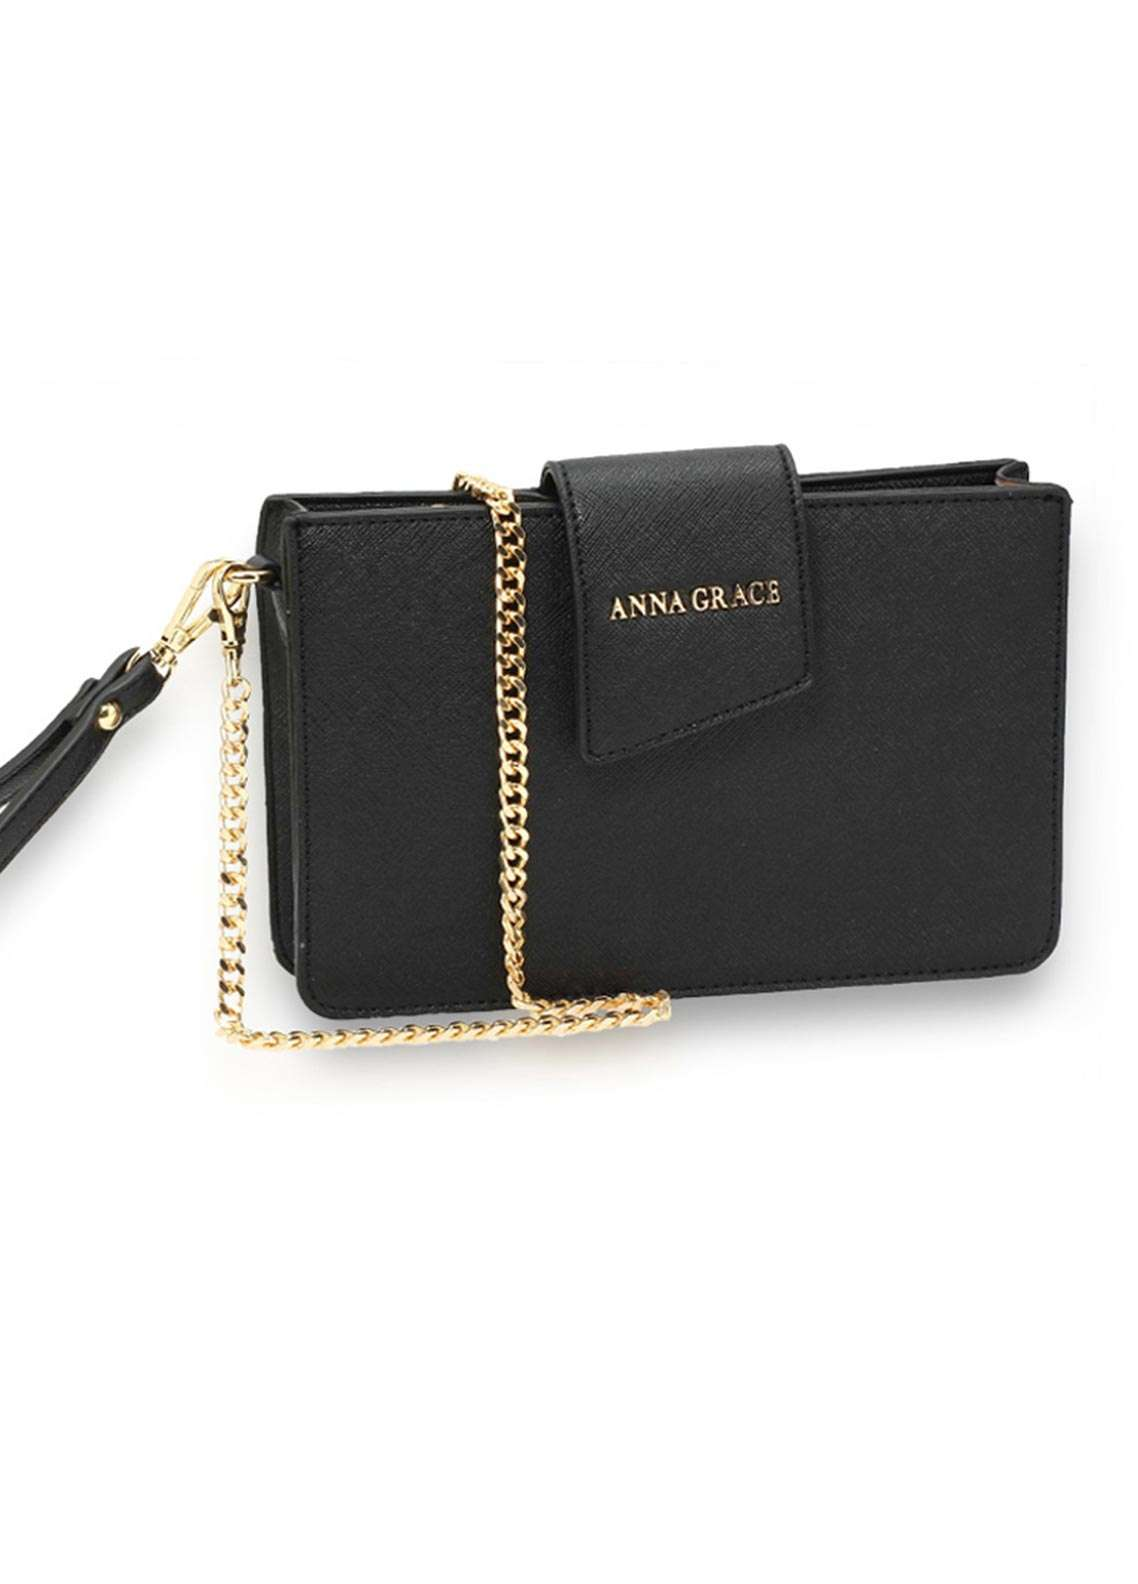 Anna Grace London Faux Leather Crossbody  Bags  for Women  Black with Rugged Texture